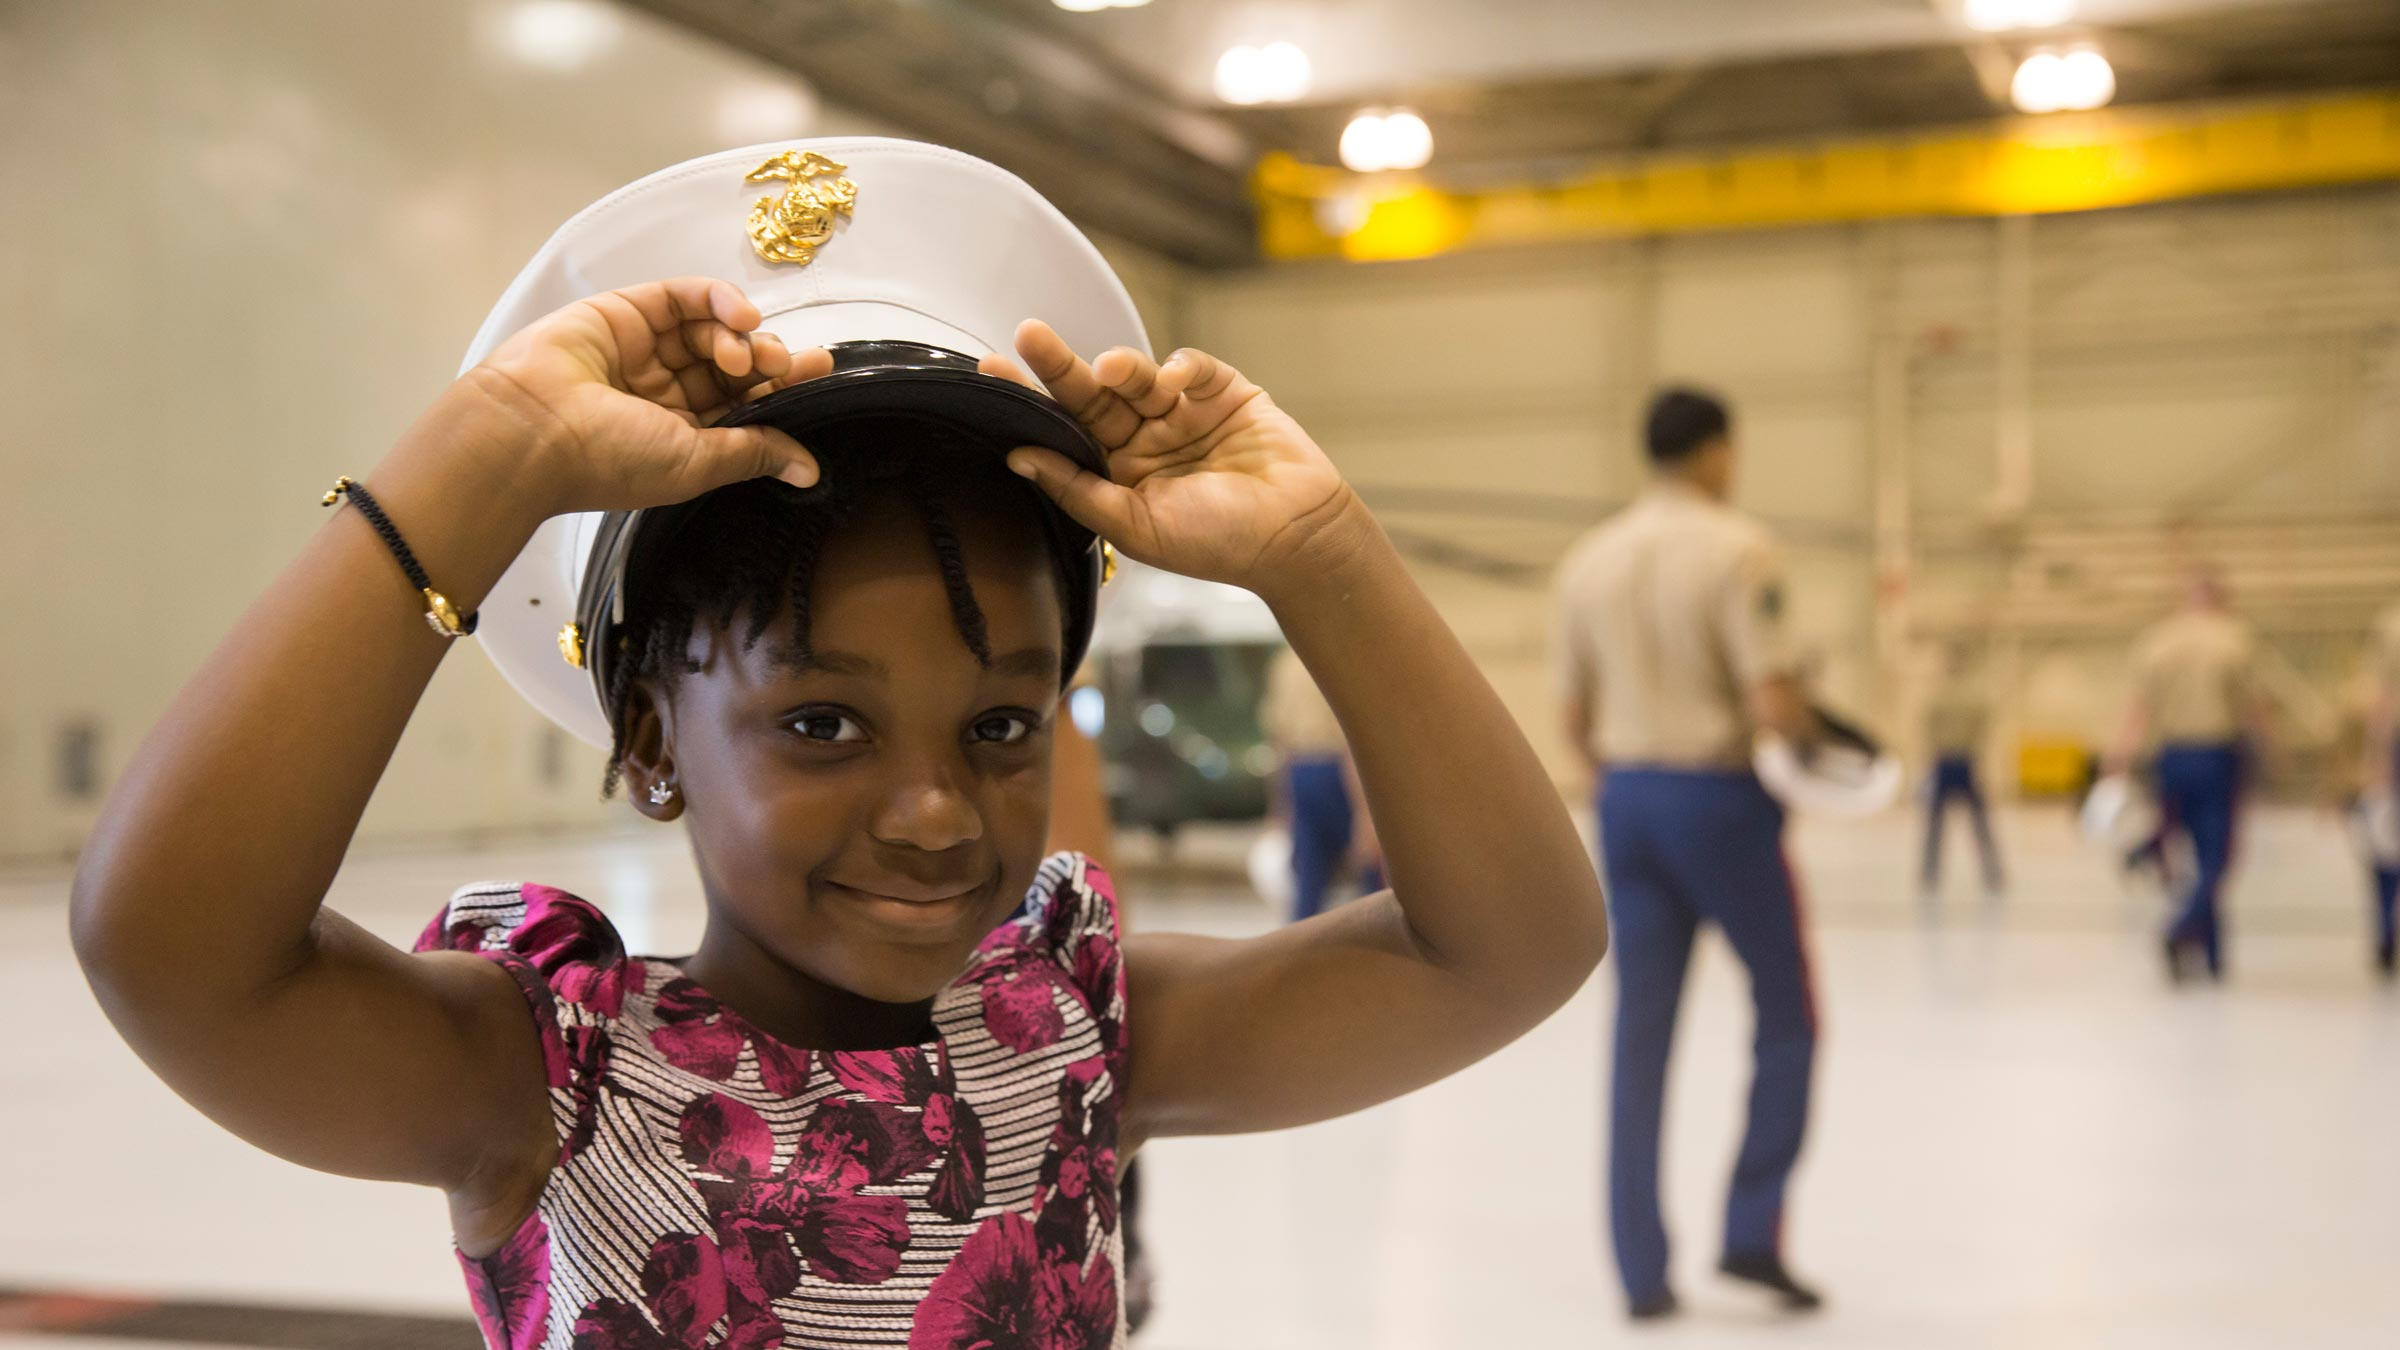 Girl put on naval officers hat